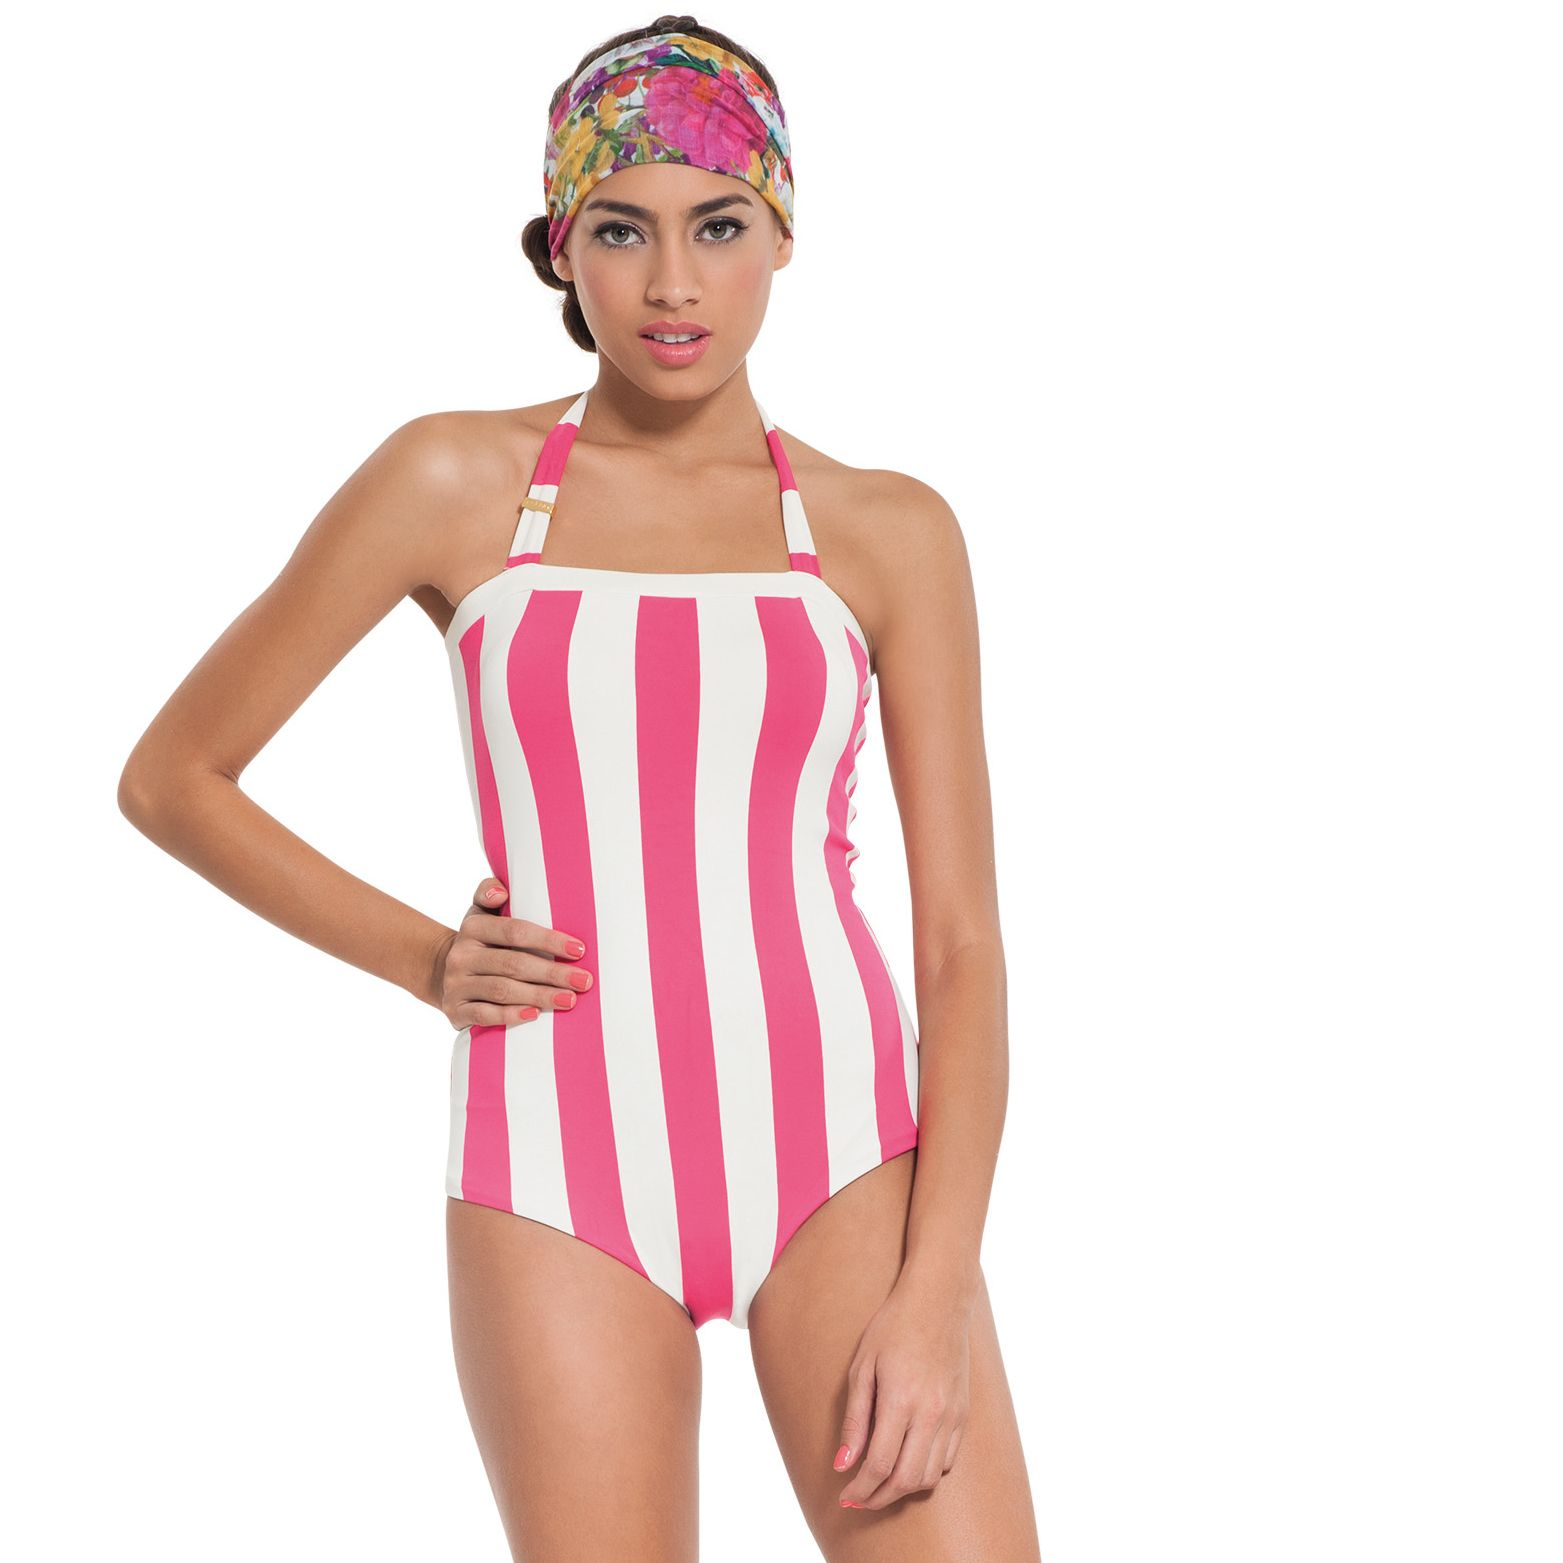 Maxi Striped Neon Sorbet.   3025/bou/23: Retro one piece with moulded cups and tummy control.